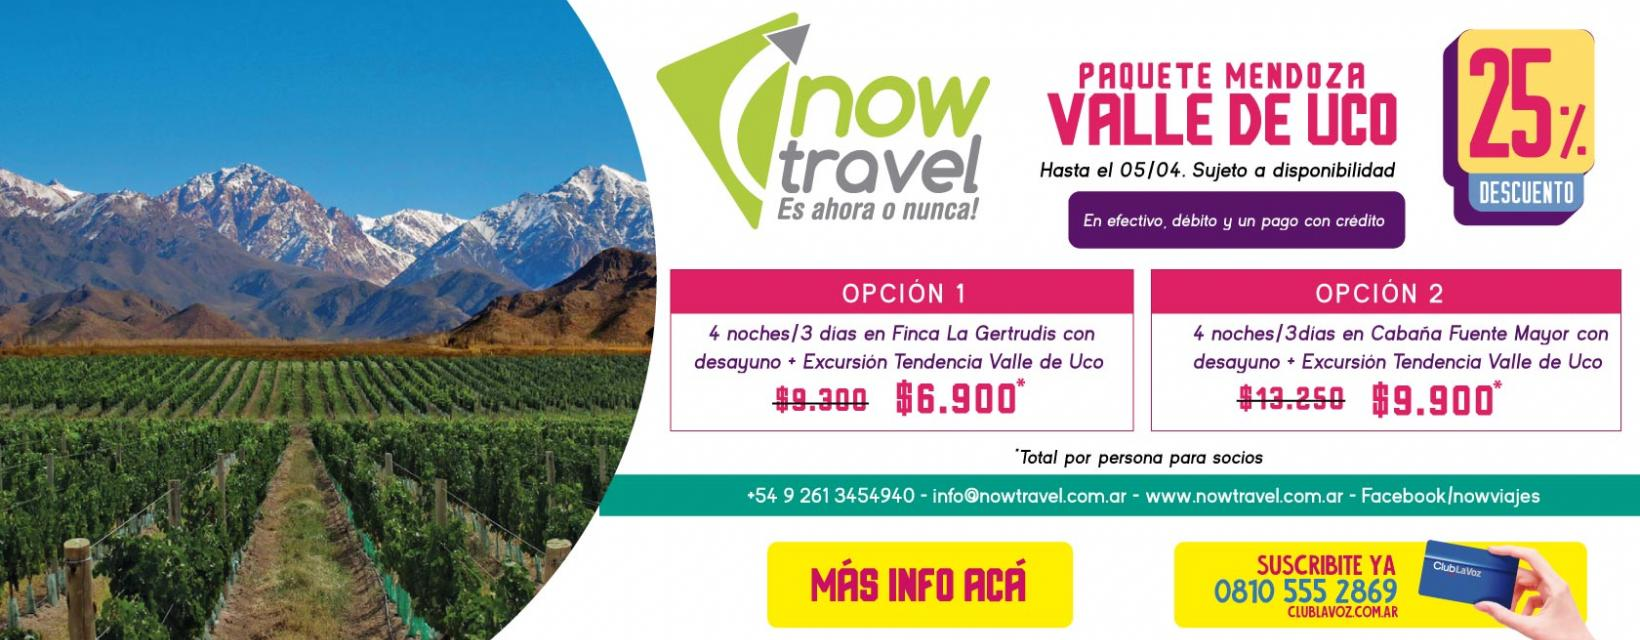 now travel banner